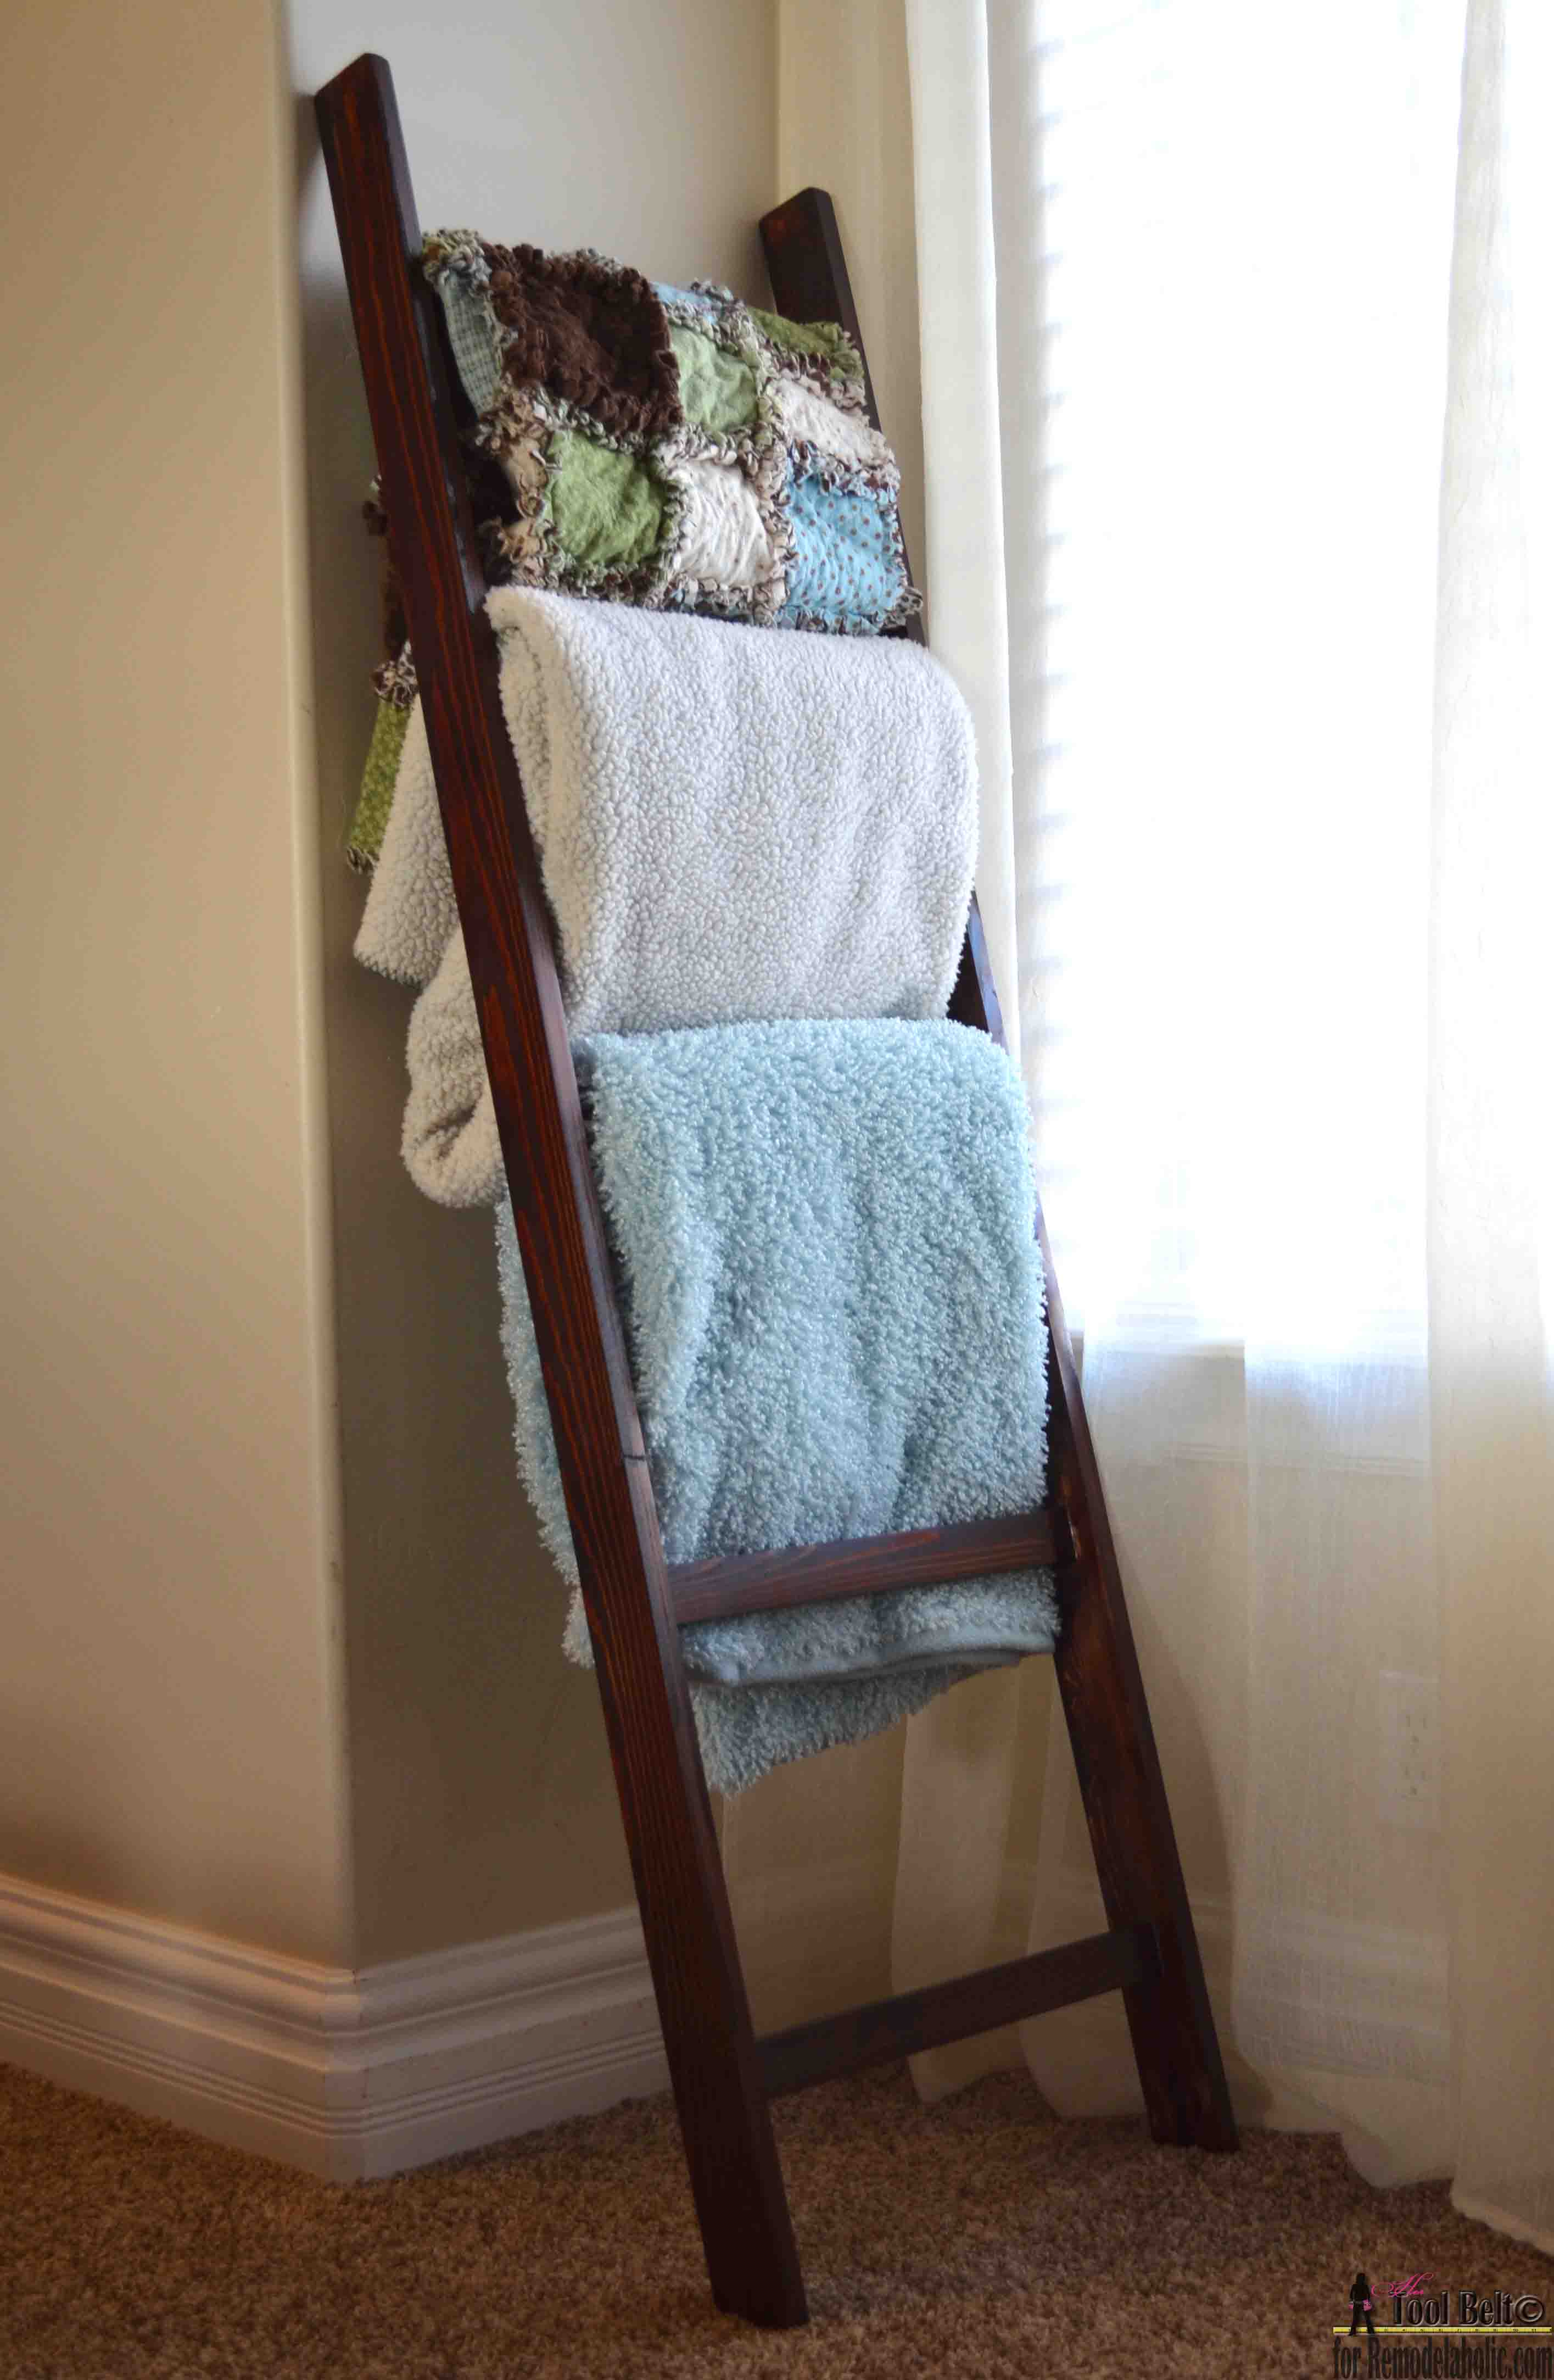 A Blanket Ladder Is A Great Storage Solution And It Is So Easy To Build And Cheap You Can Buy The Wood For About  They Make A Great Homemade Gift Too